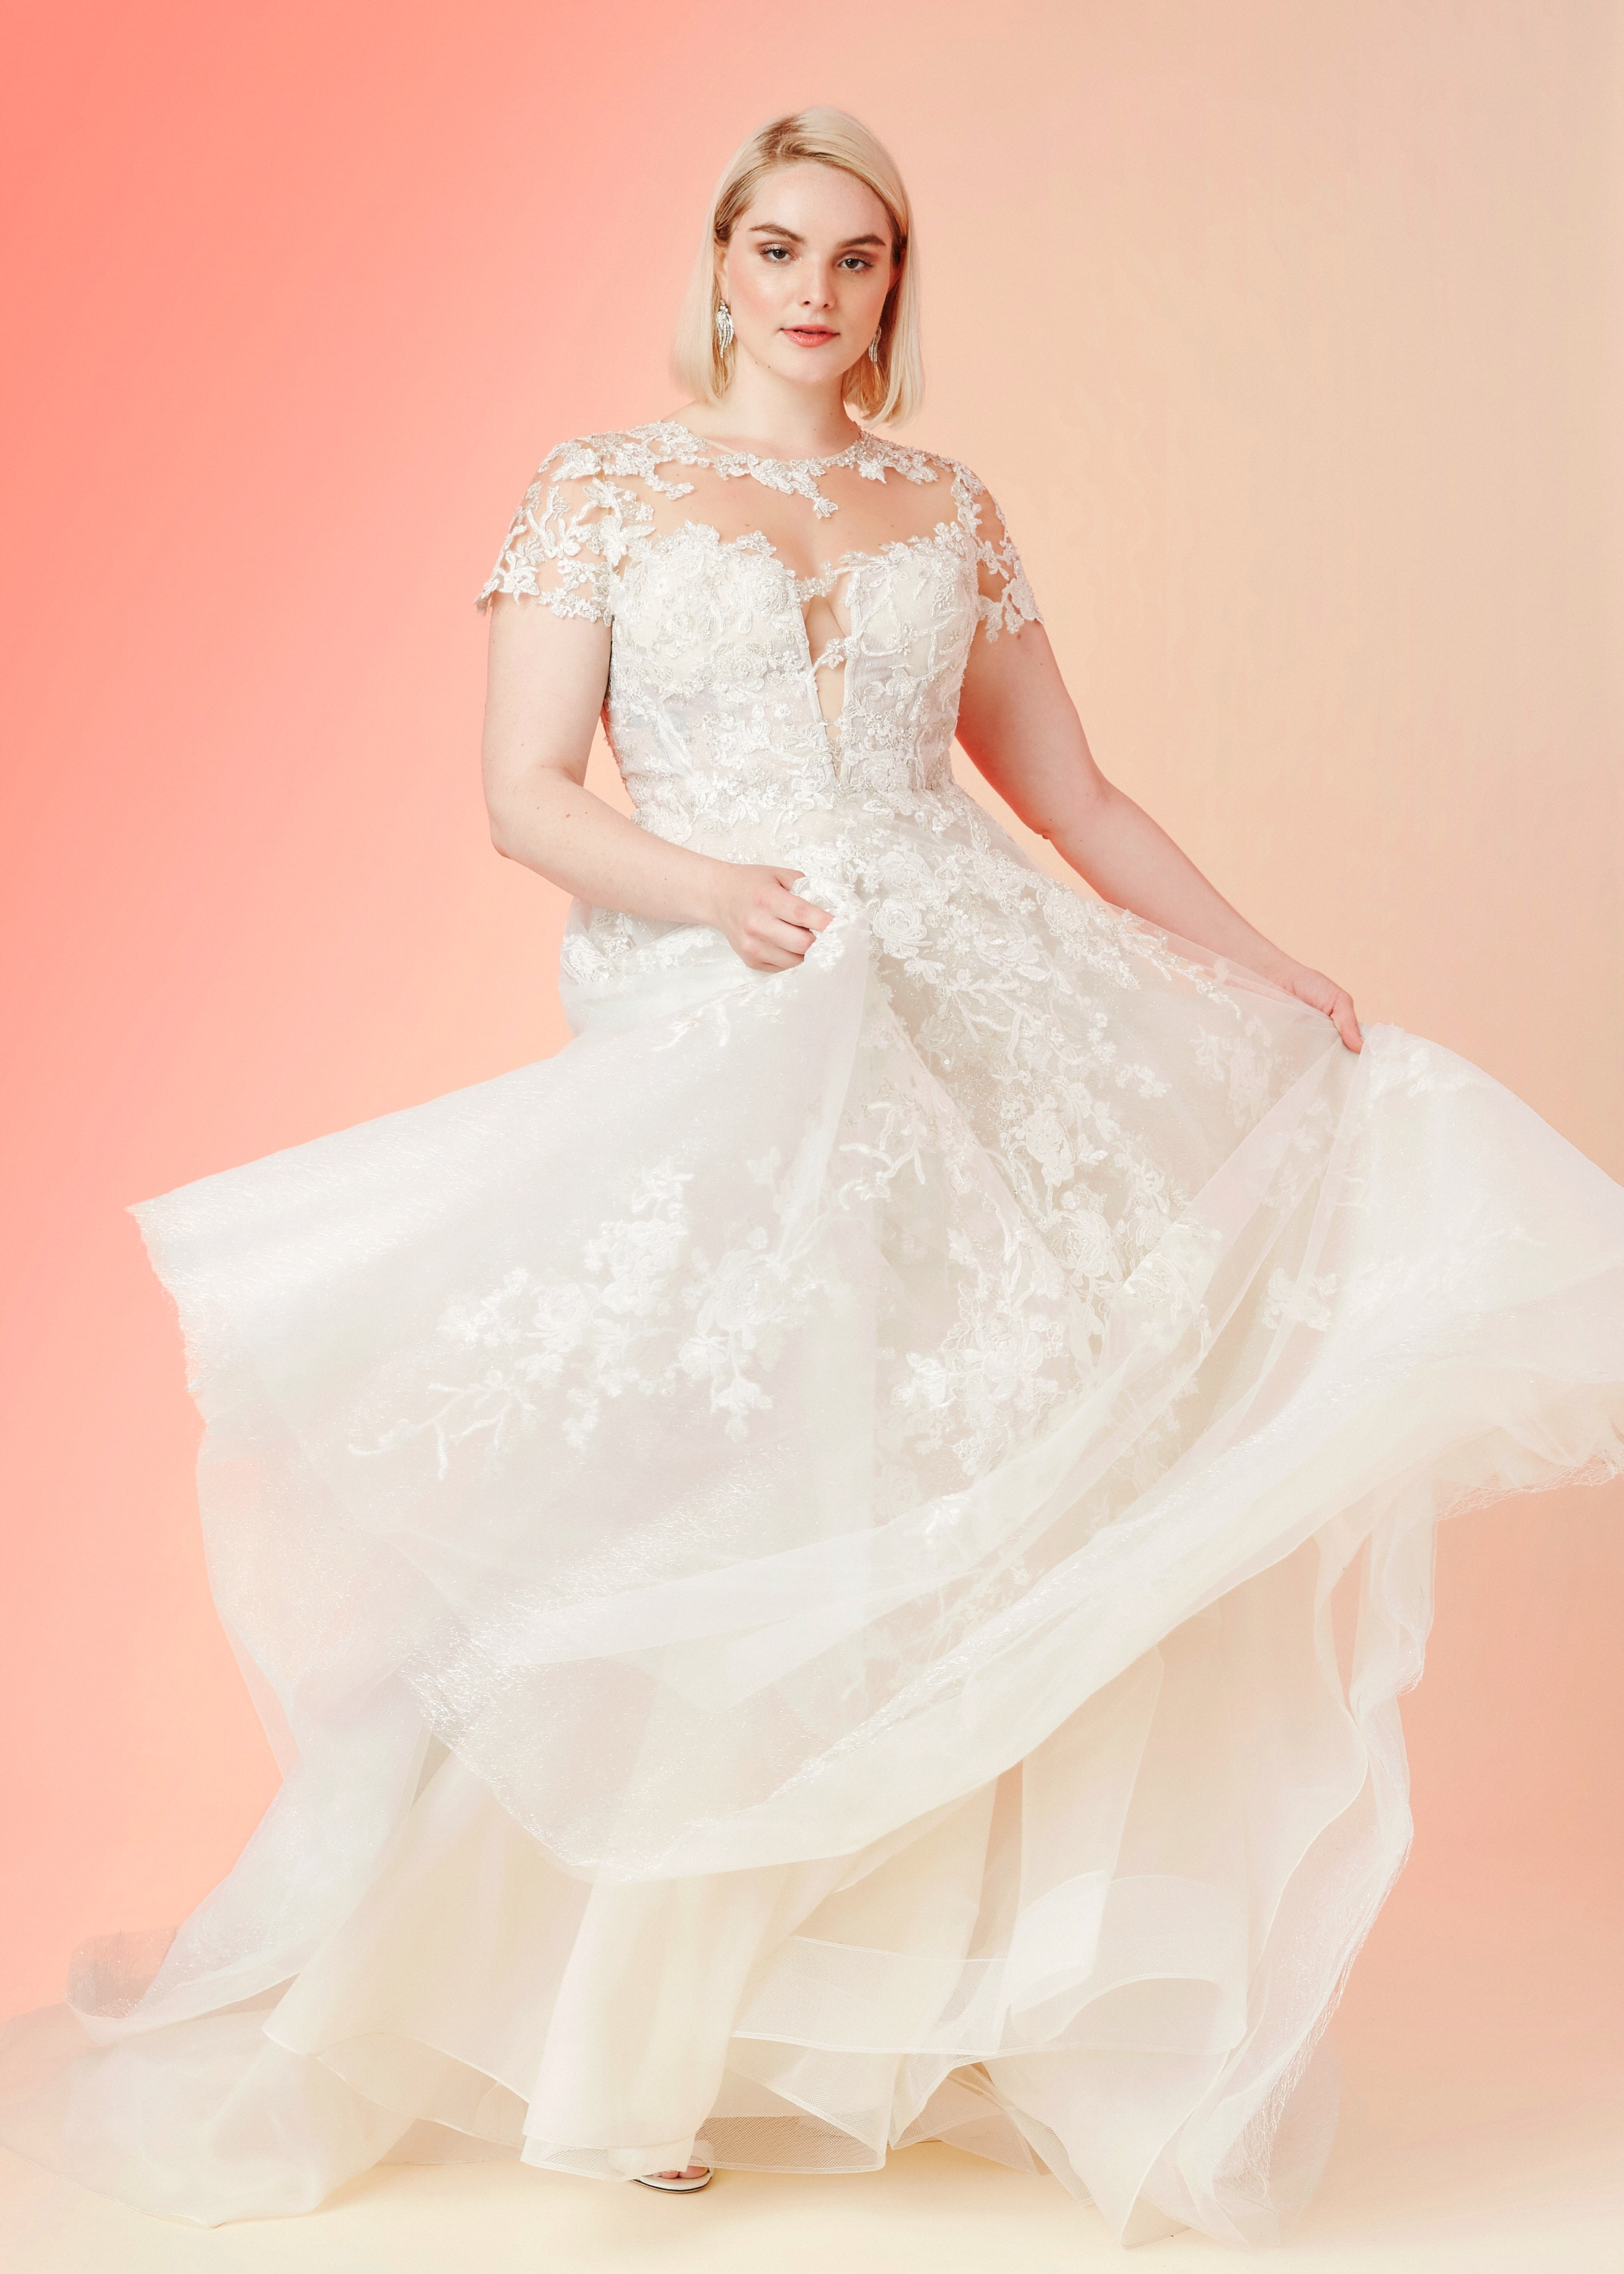 12 Of The Best Plus Size Wedding Gowns